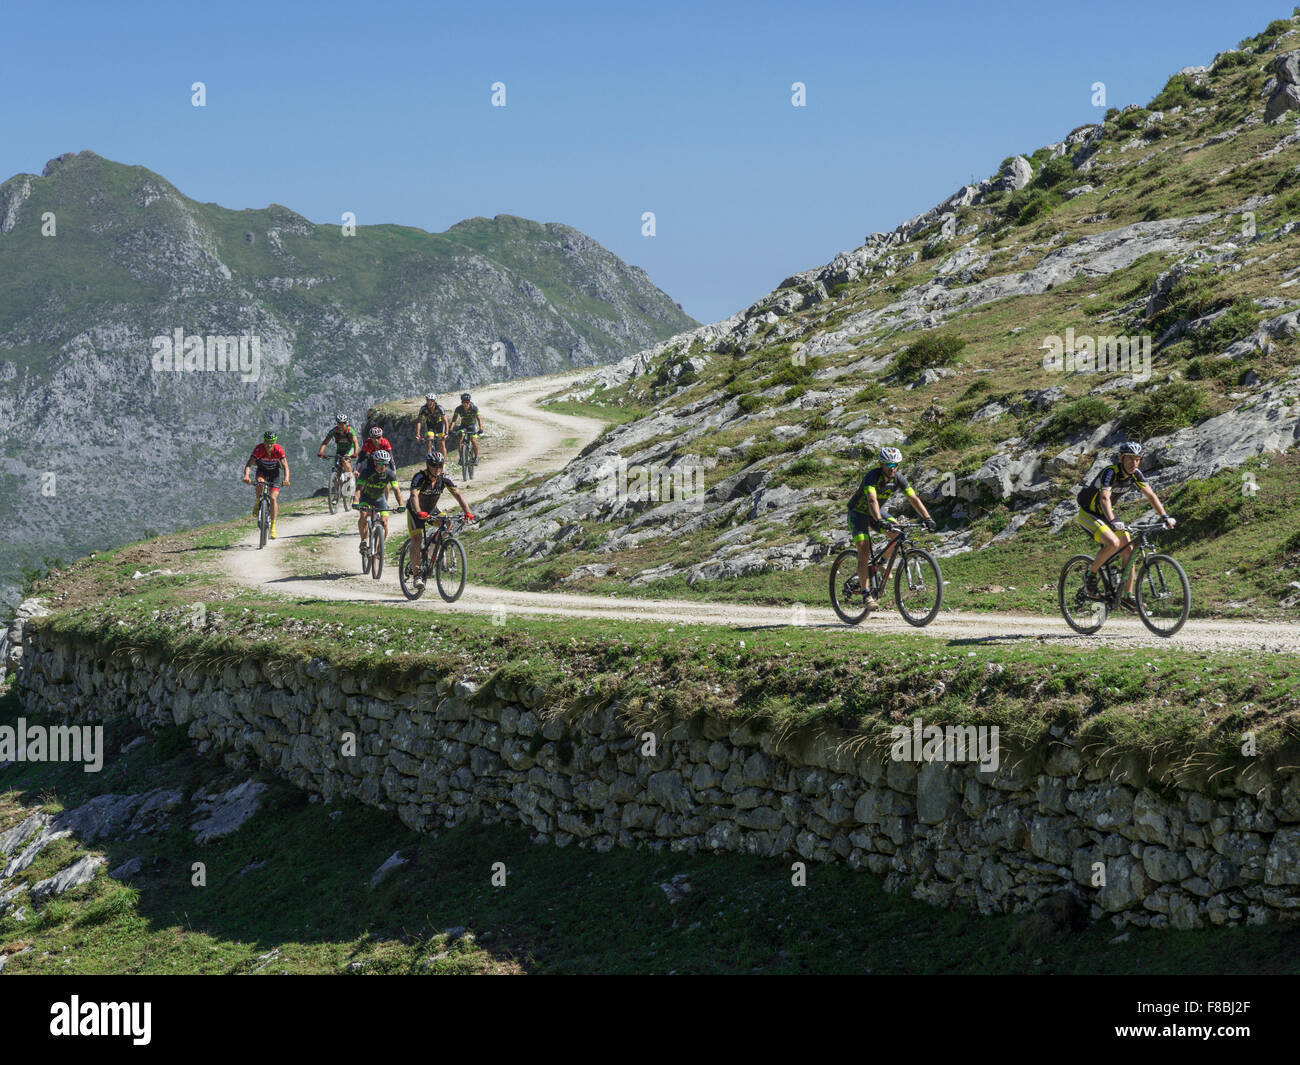 Mountain bikers in the Picos de Europa Mountains, near Sotres, Cantabria, Spain - Stock Image